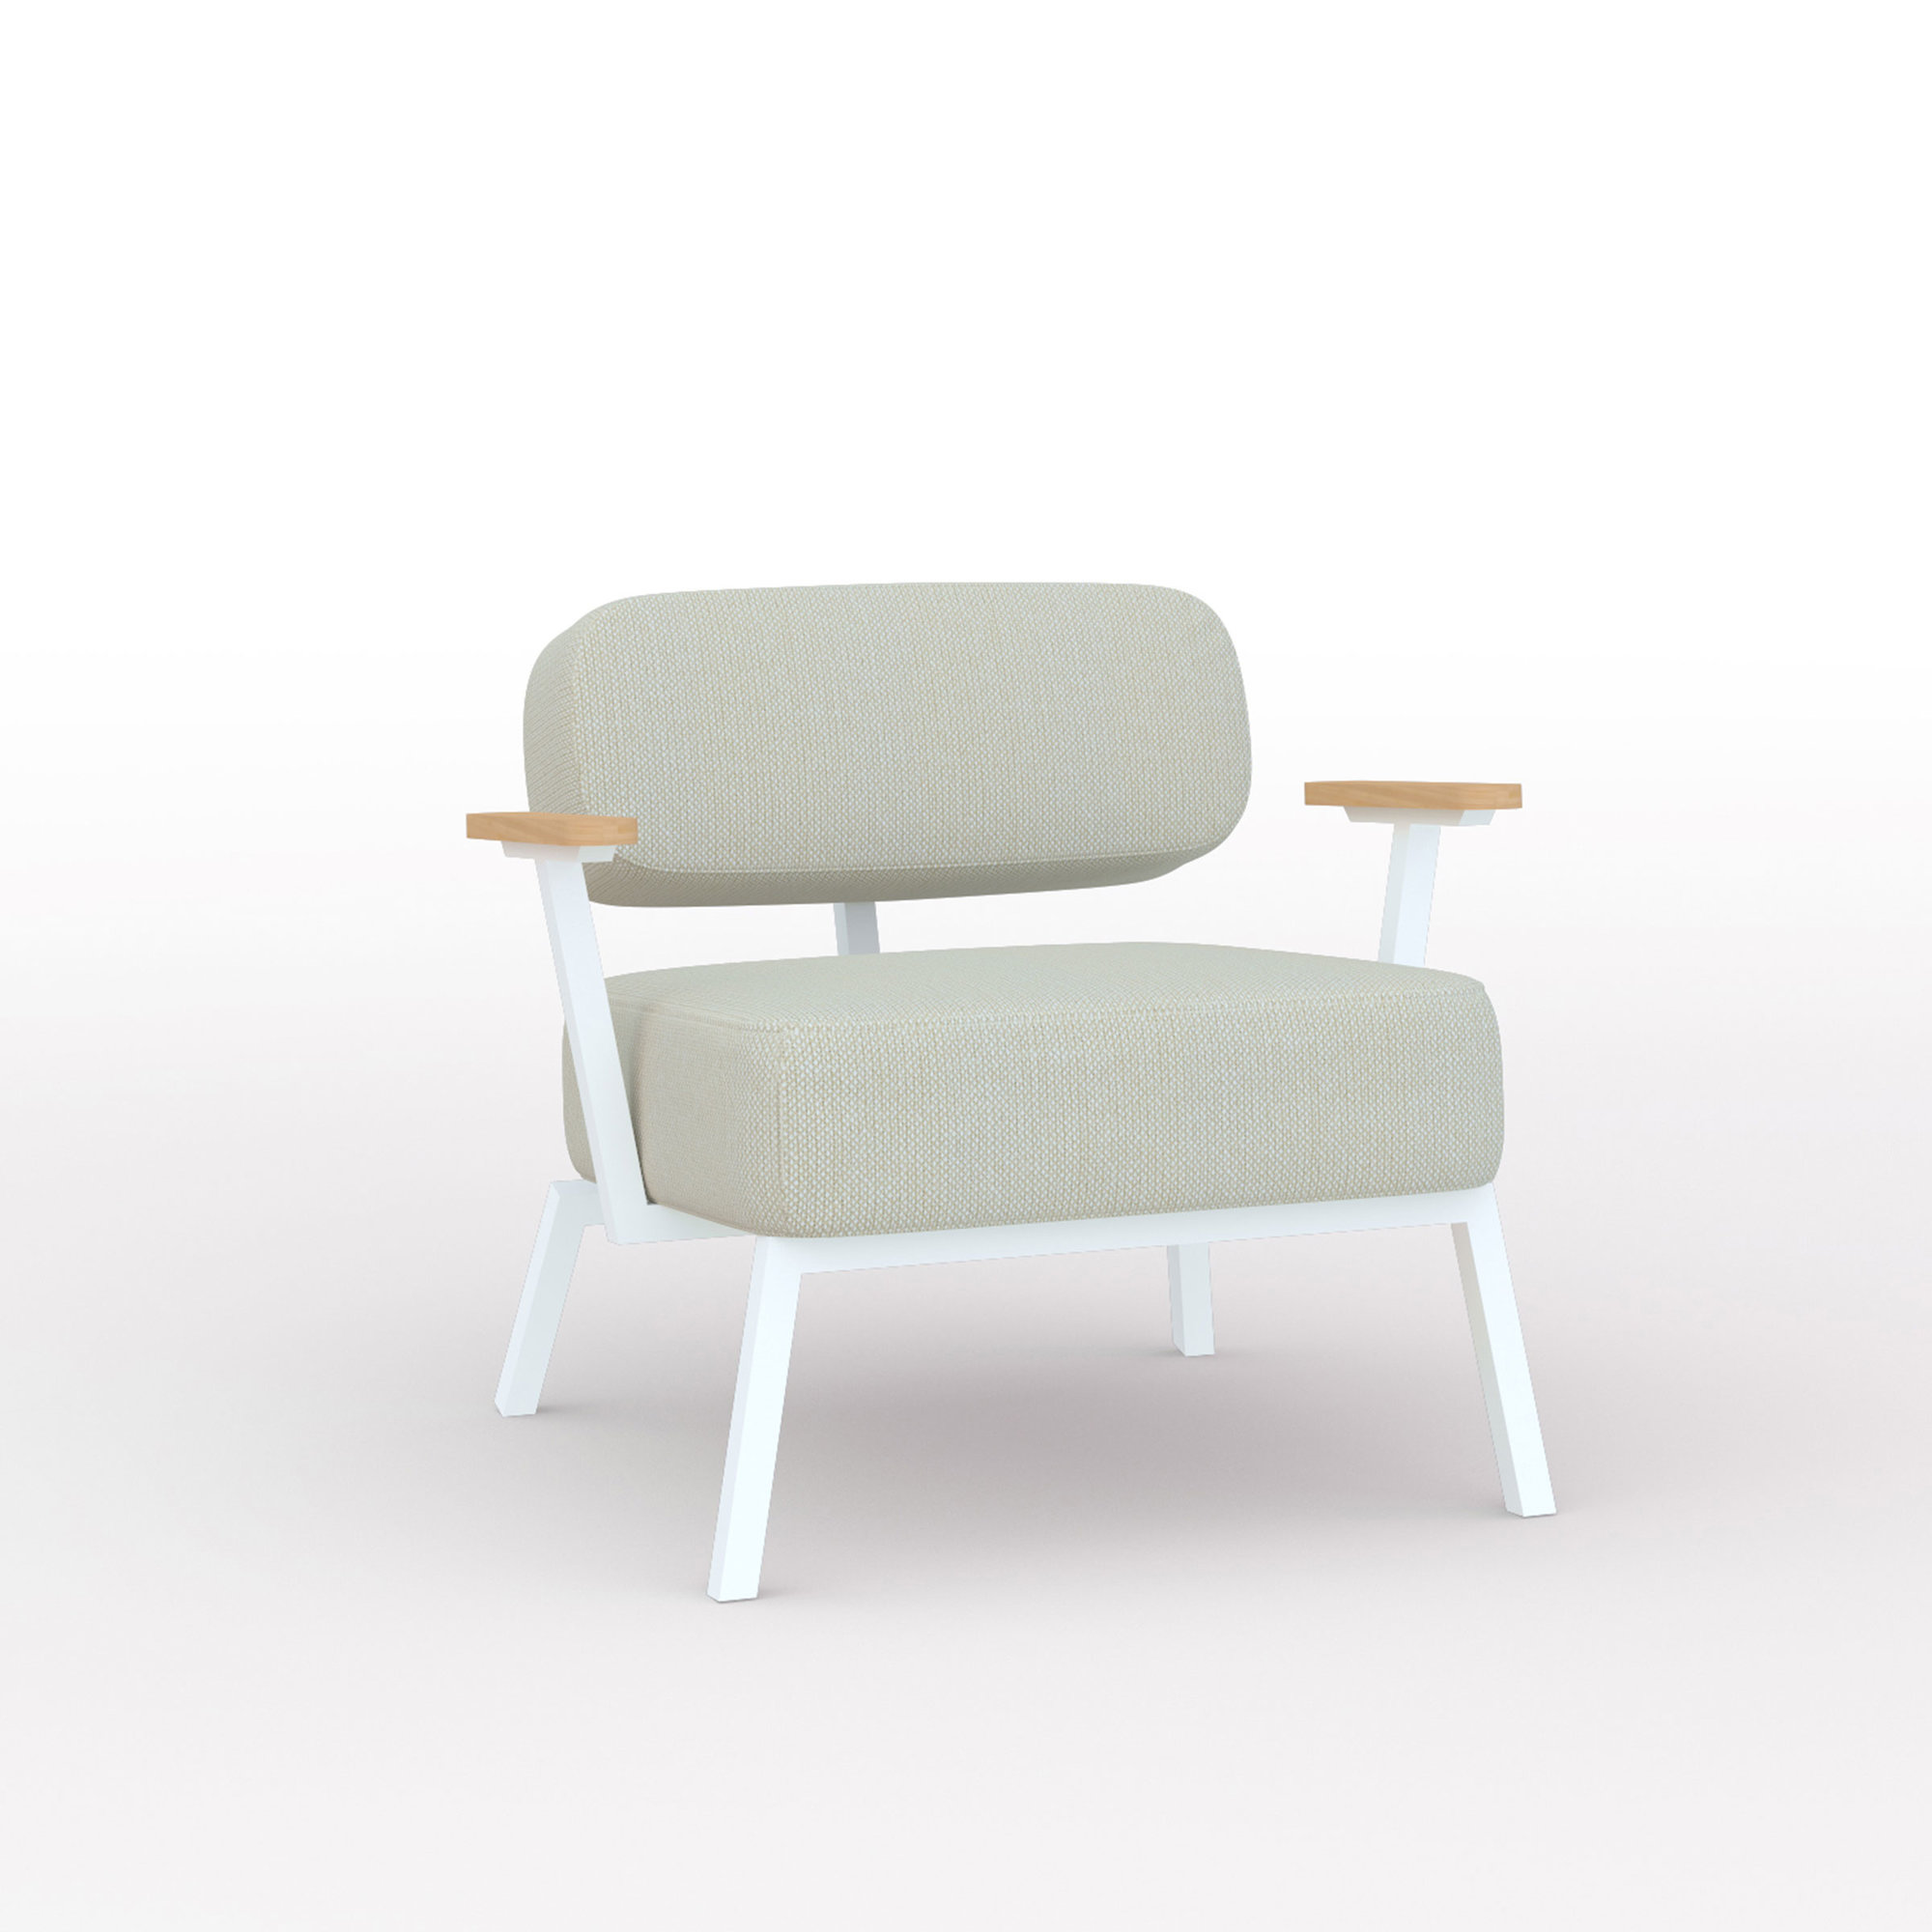 Design zitbank | Ode lounge chair 1 seater with armrest hallingdal65 200 | Studio HENK | Listing_image